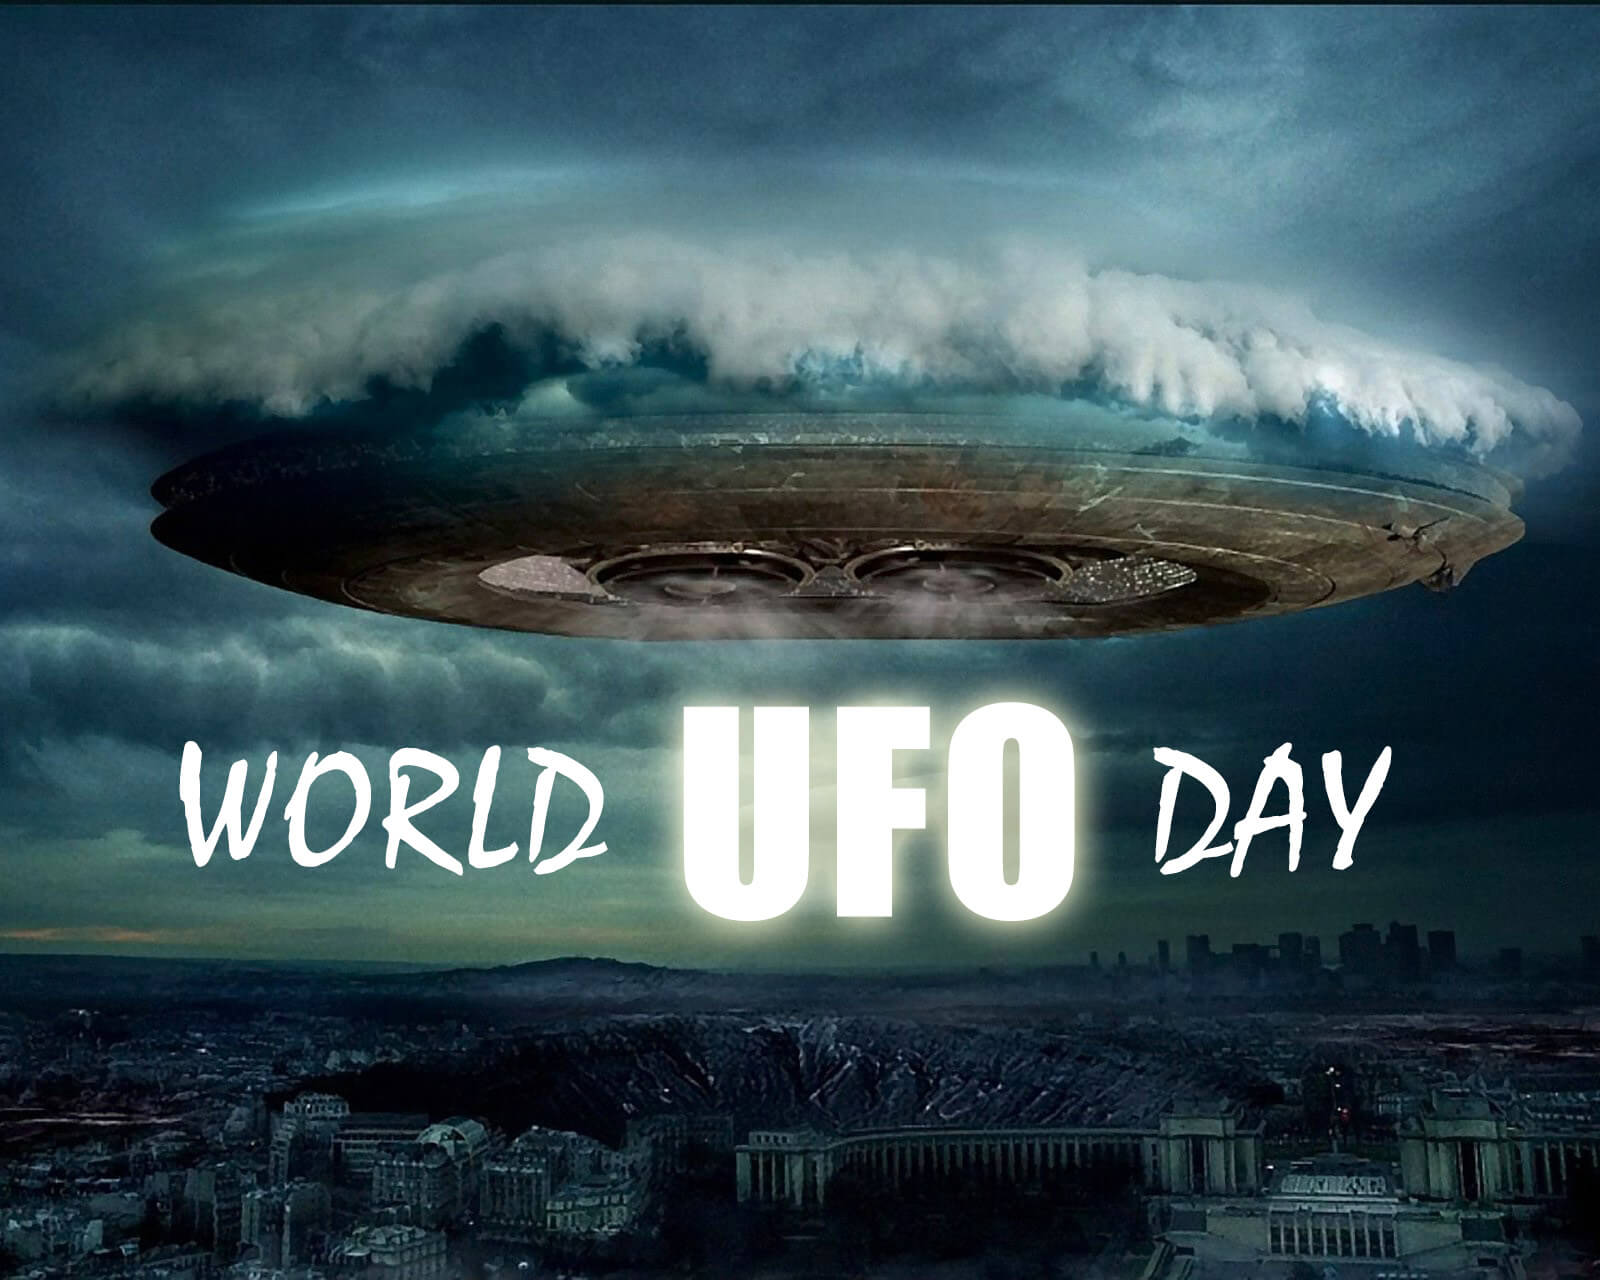 world ufo day unidentified flying object saucer july hd wallpaper